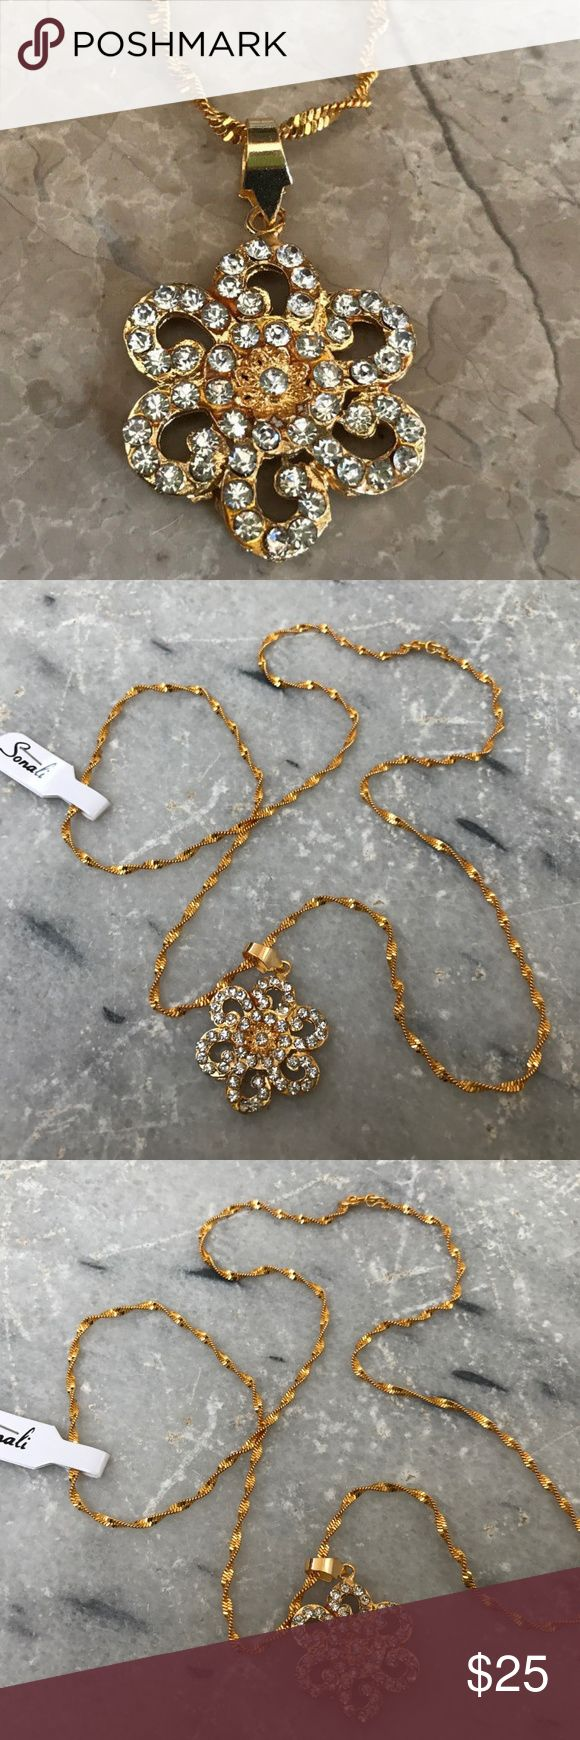 Women Necklace Gold Chain Pendant Neck Indian Mala Women's Necklace Gold Chain Pendant Neck Indian Mala Bollywood Ethnic Jewelry  Color: Gold ( See the Photos )  Size: 24 Inches long Chain  NOTE: This is an artificial Jewelry and not real gold.   Brand New, never Used Jewelry Necklaces